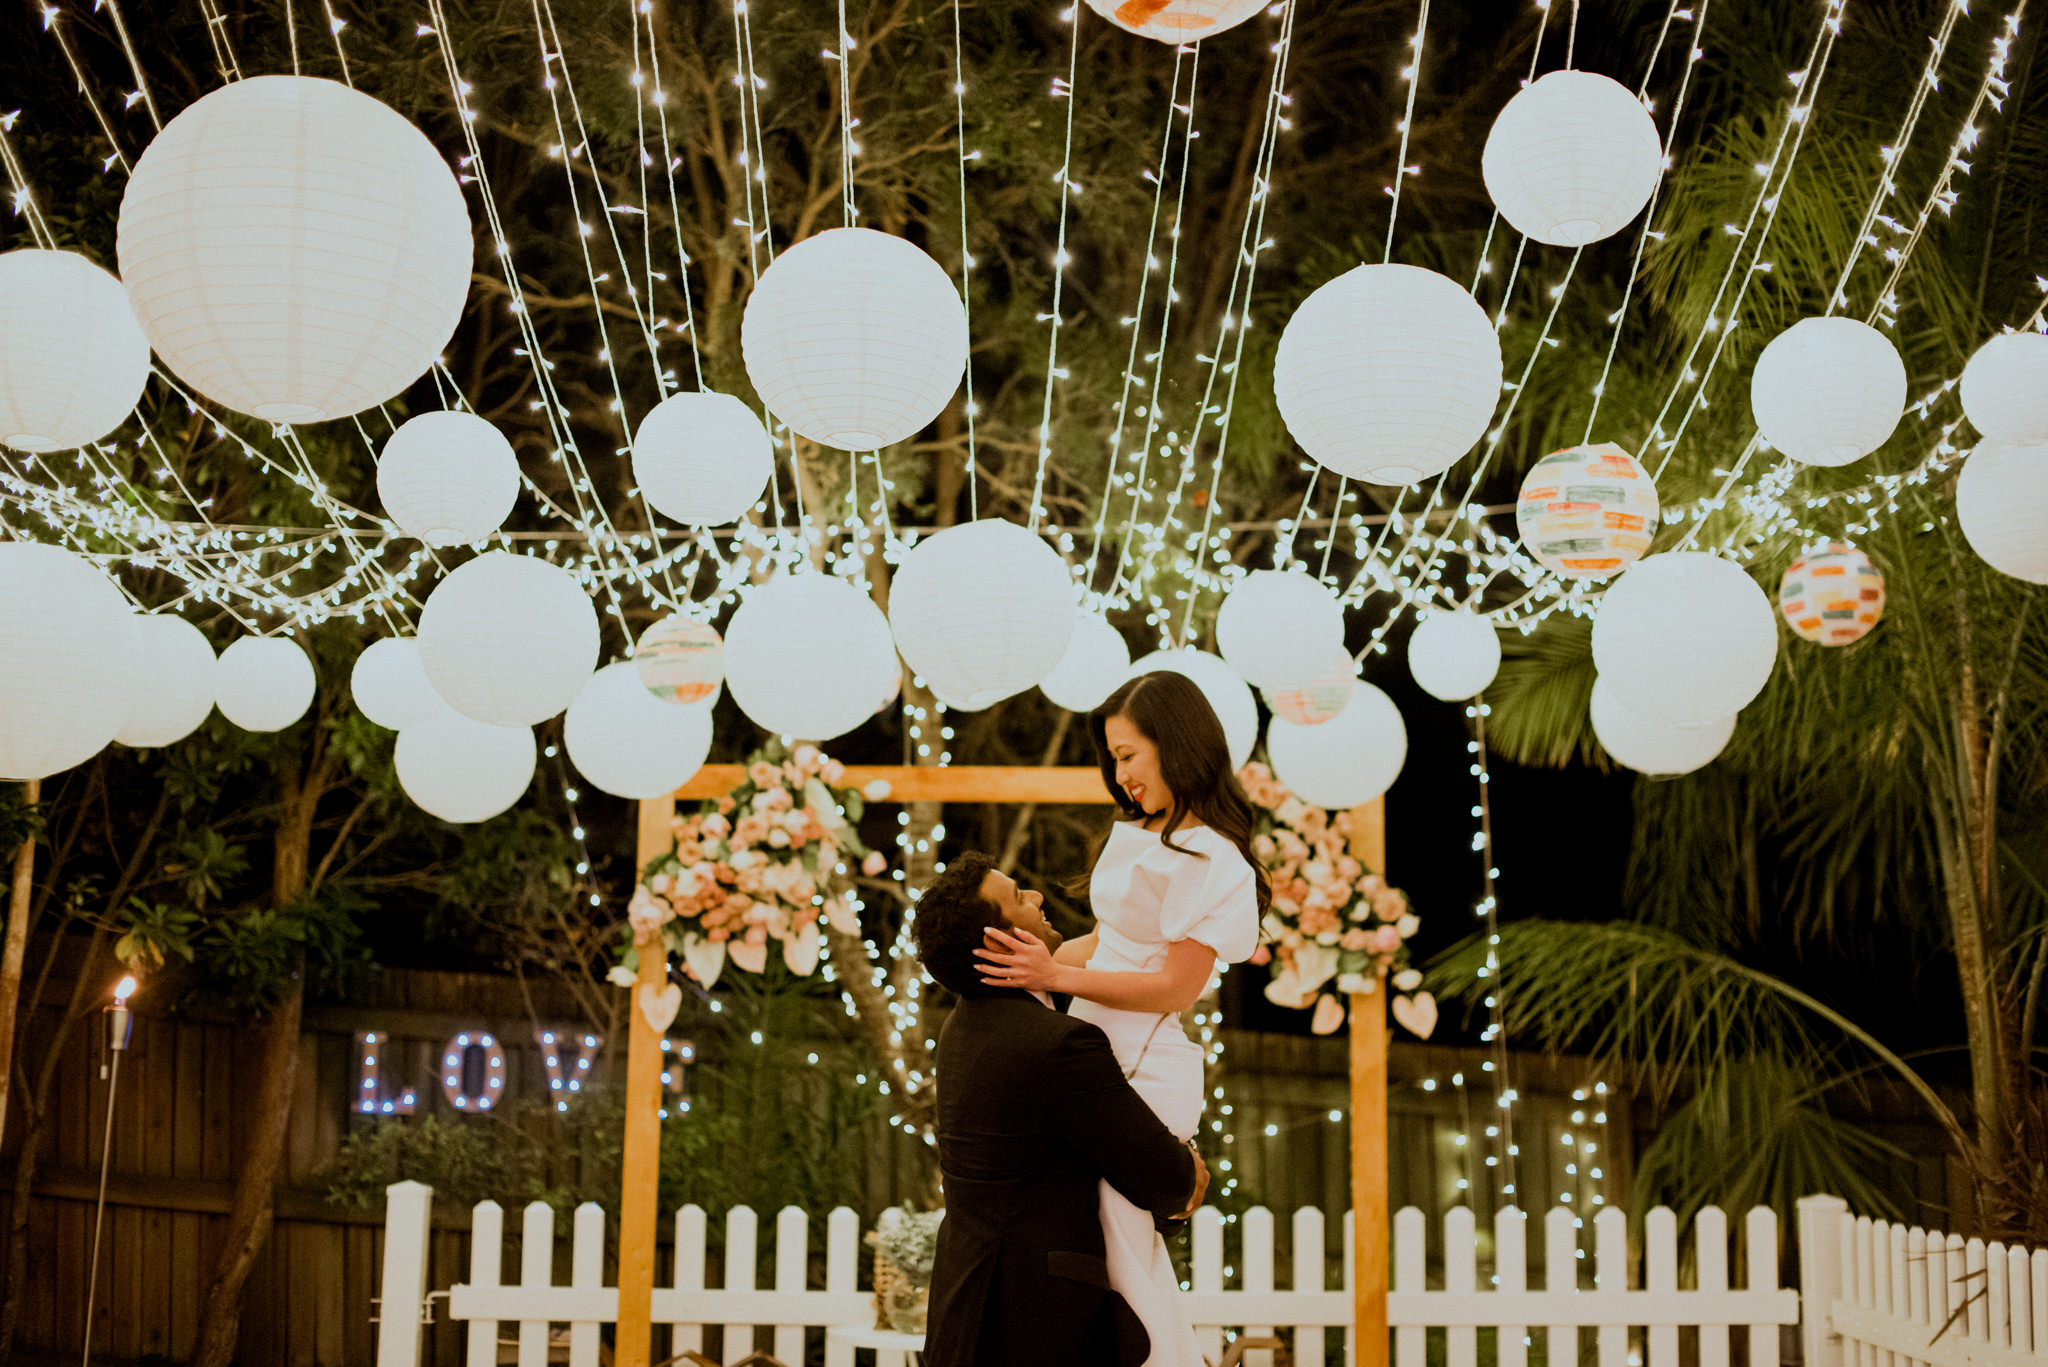 Bride and groom dancing together underneath circular lanterns and fairy lights